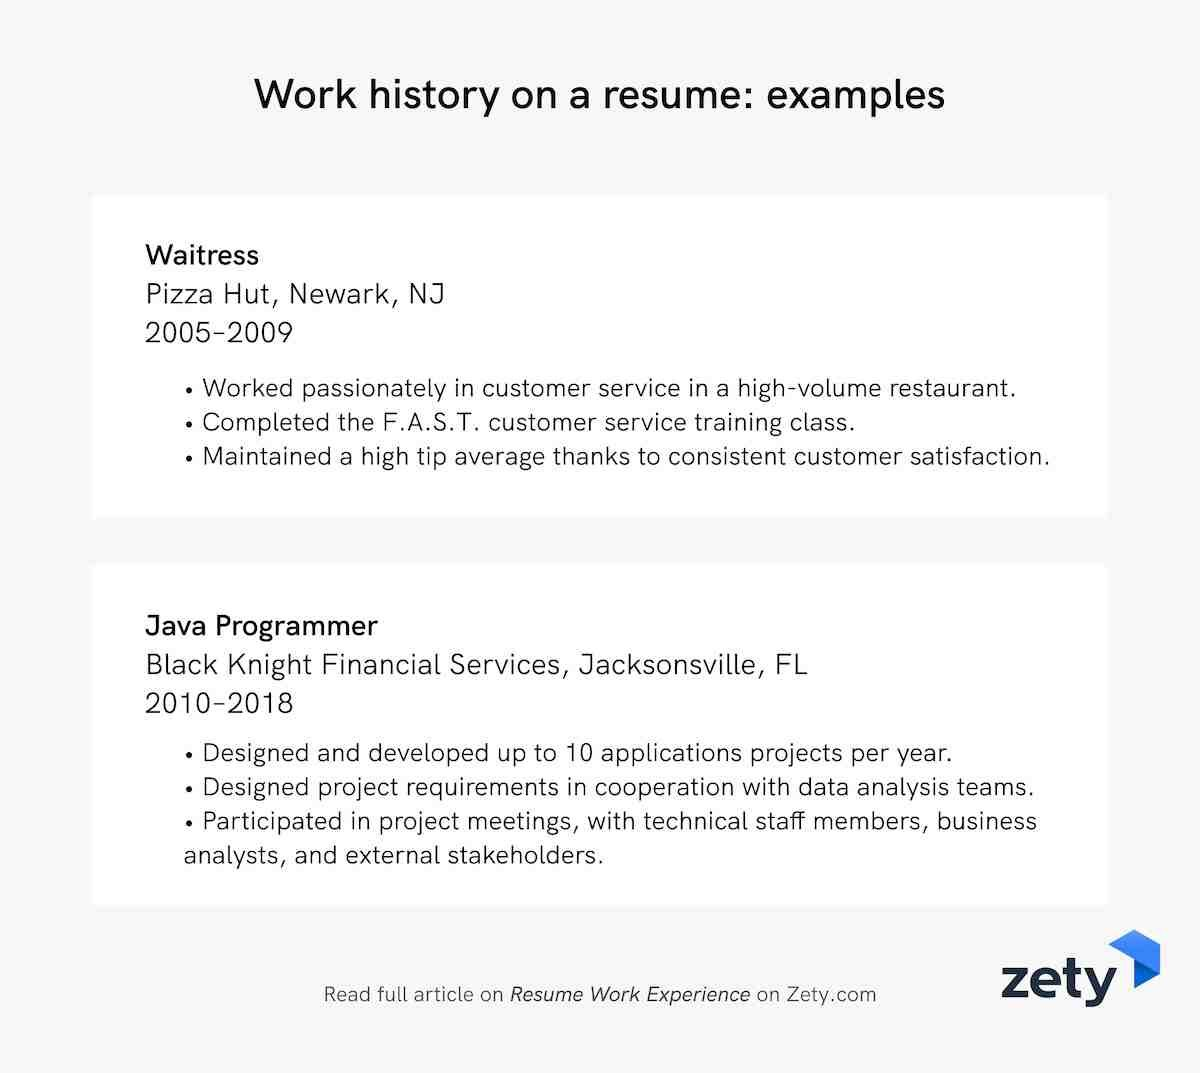 Work history on a resume: examples